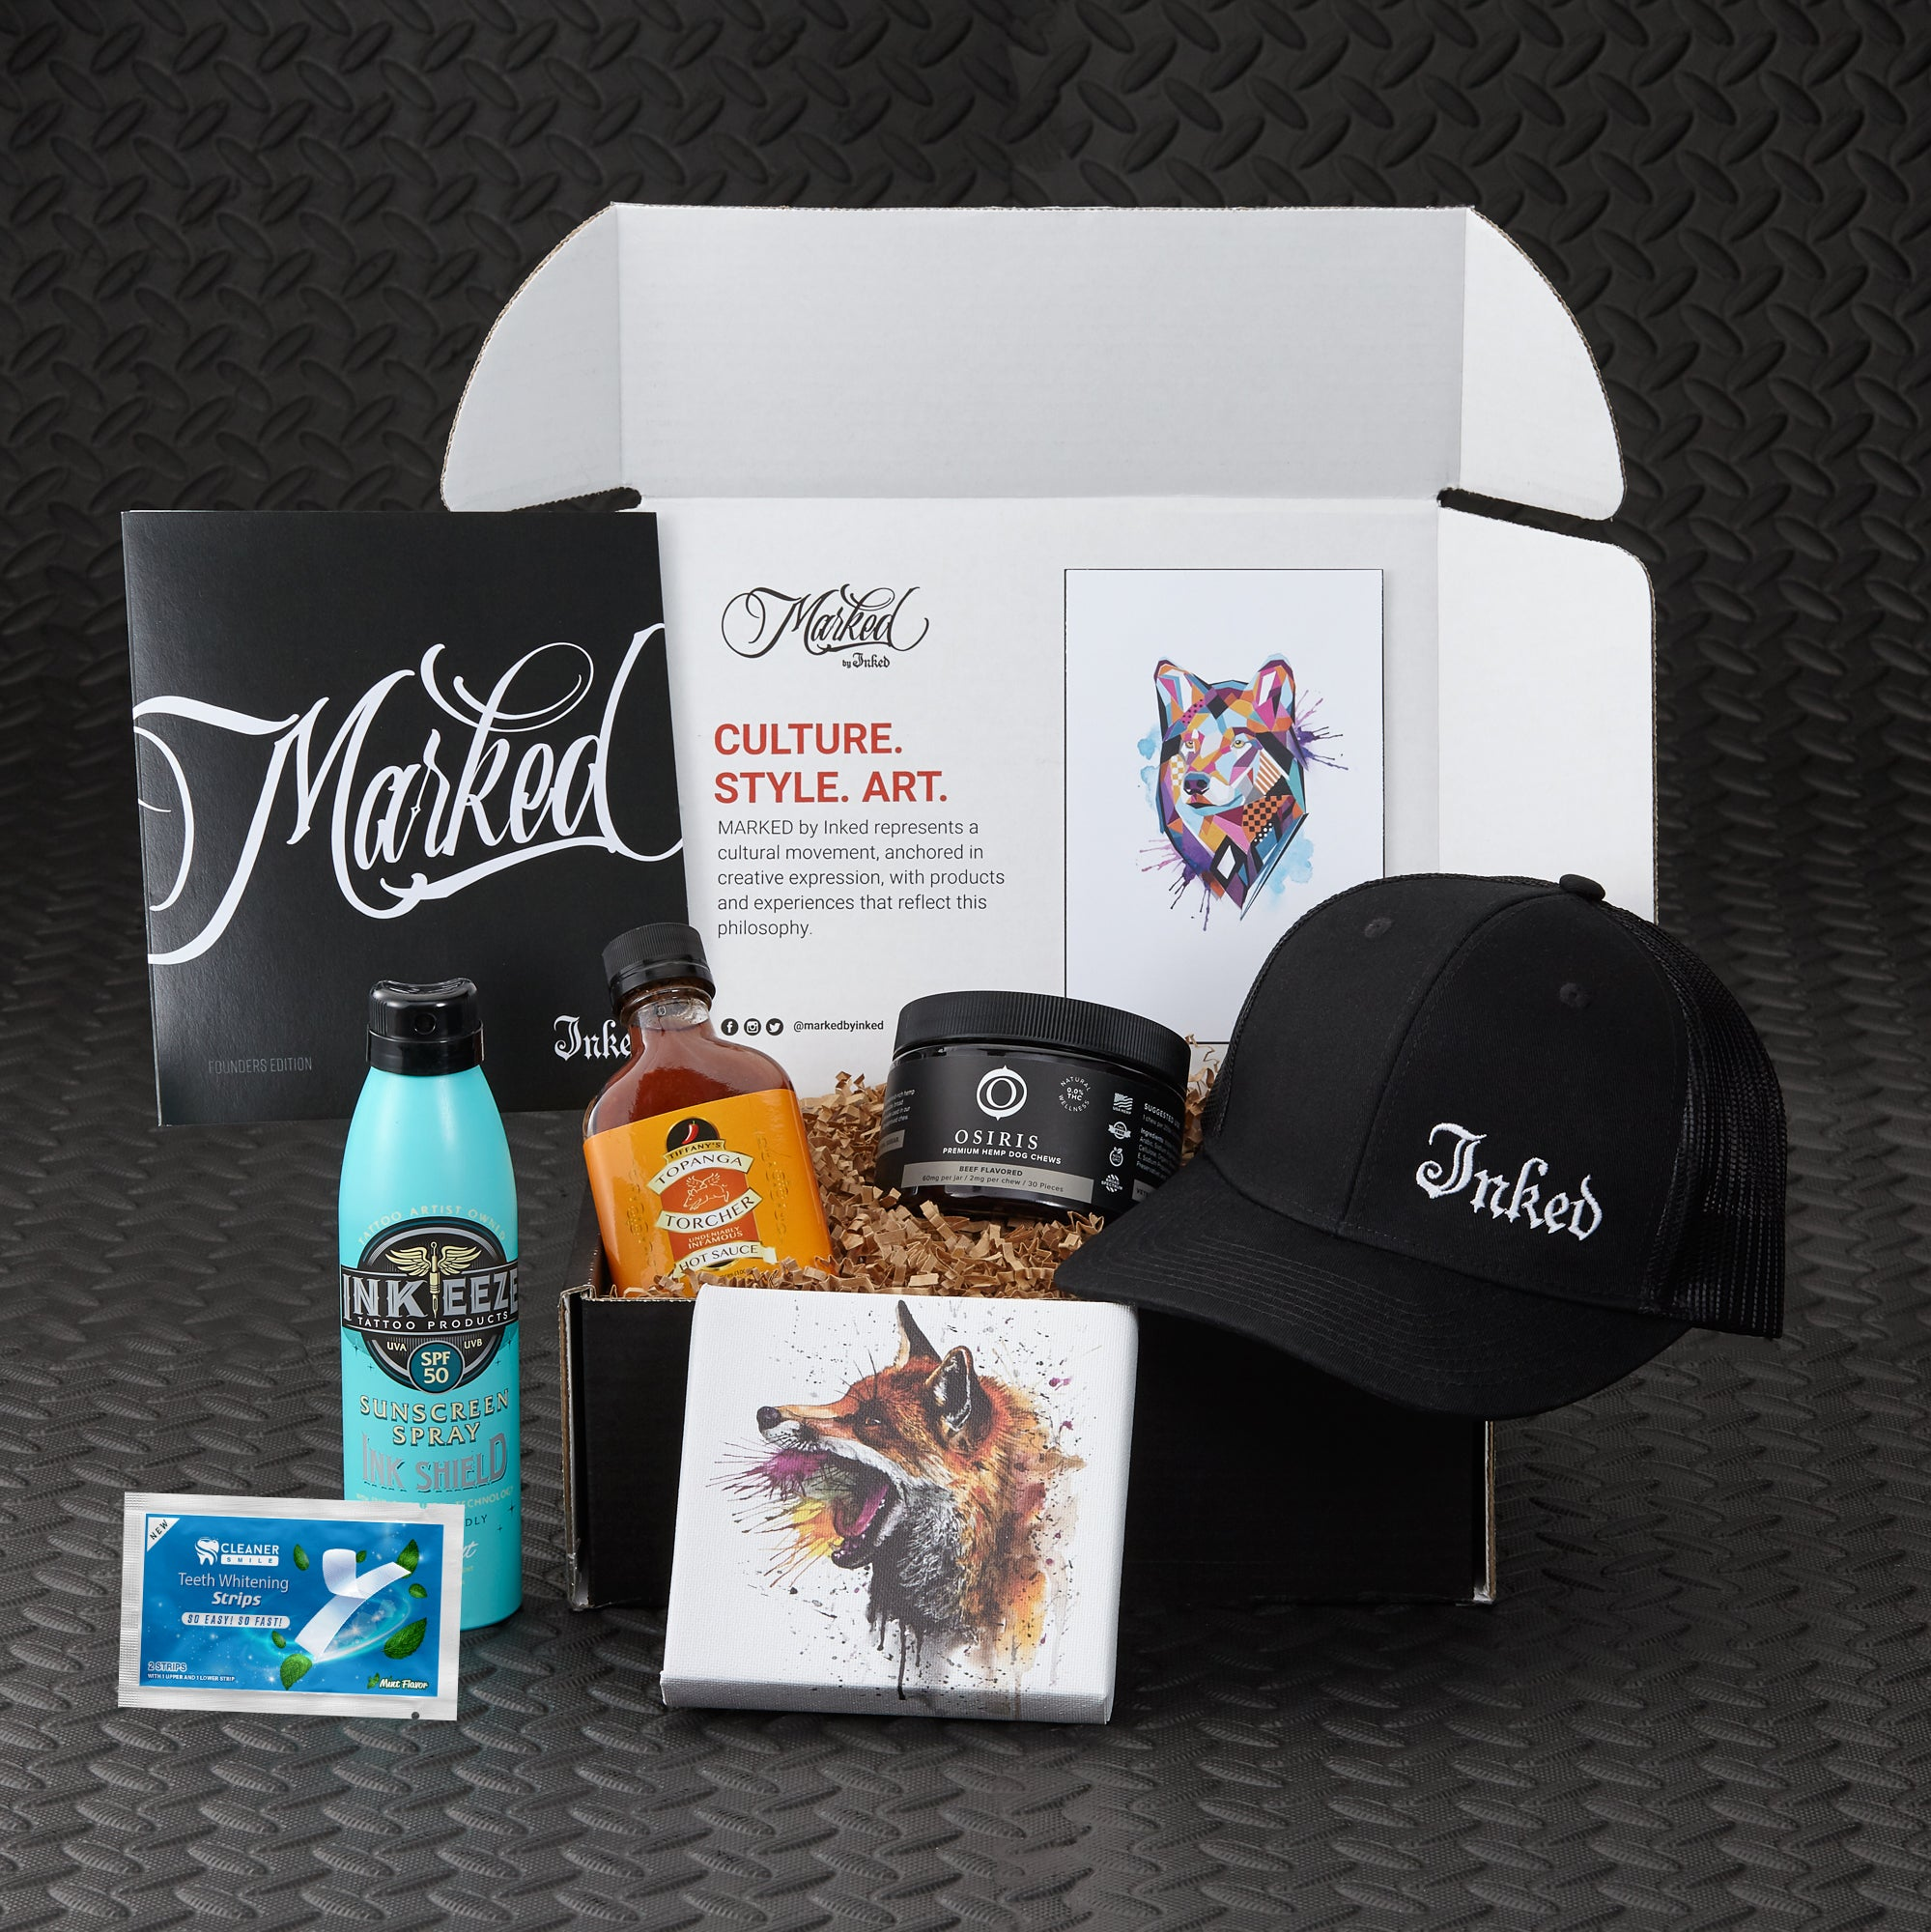 Marked by Inked tattoo culture subscription box. Featuring Mikhail Anderson